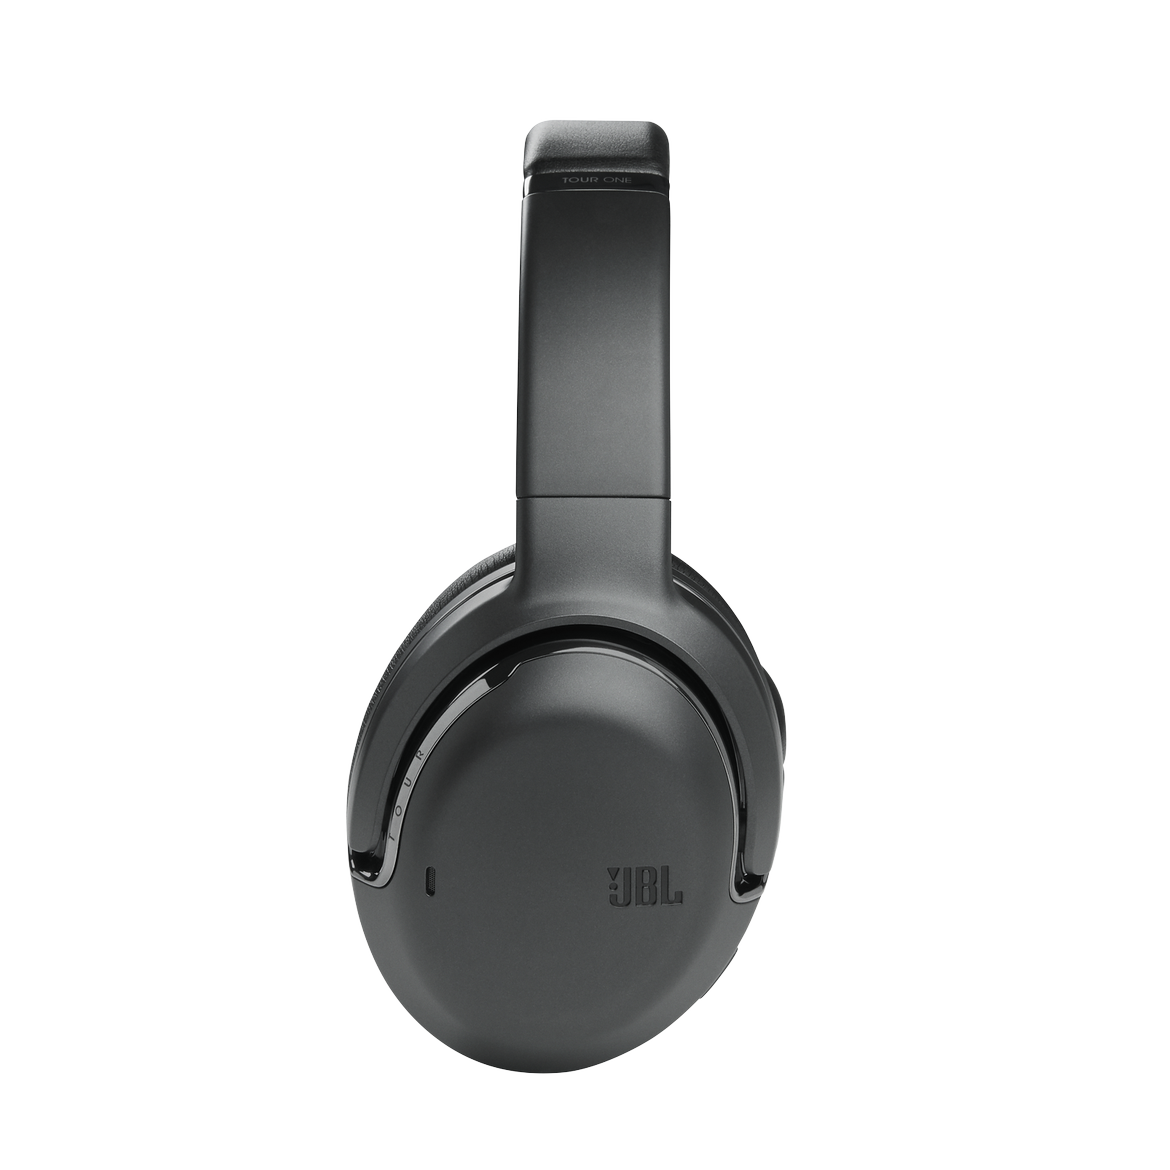 JBL_TOUR_ONE_Product Image_Left Side